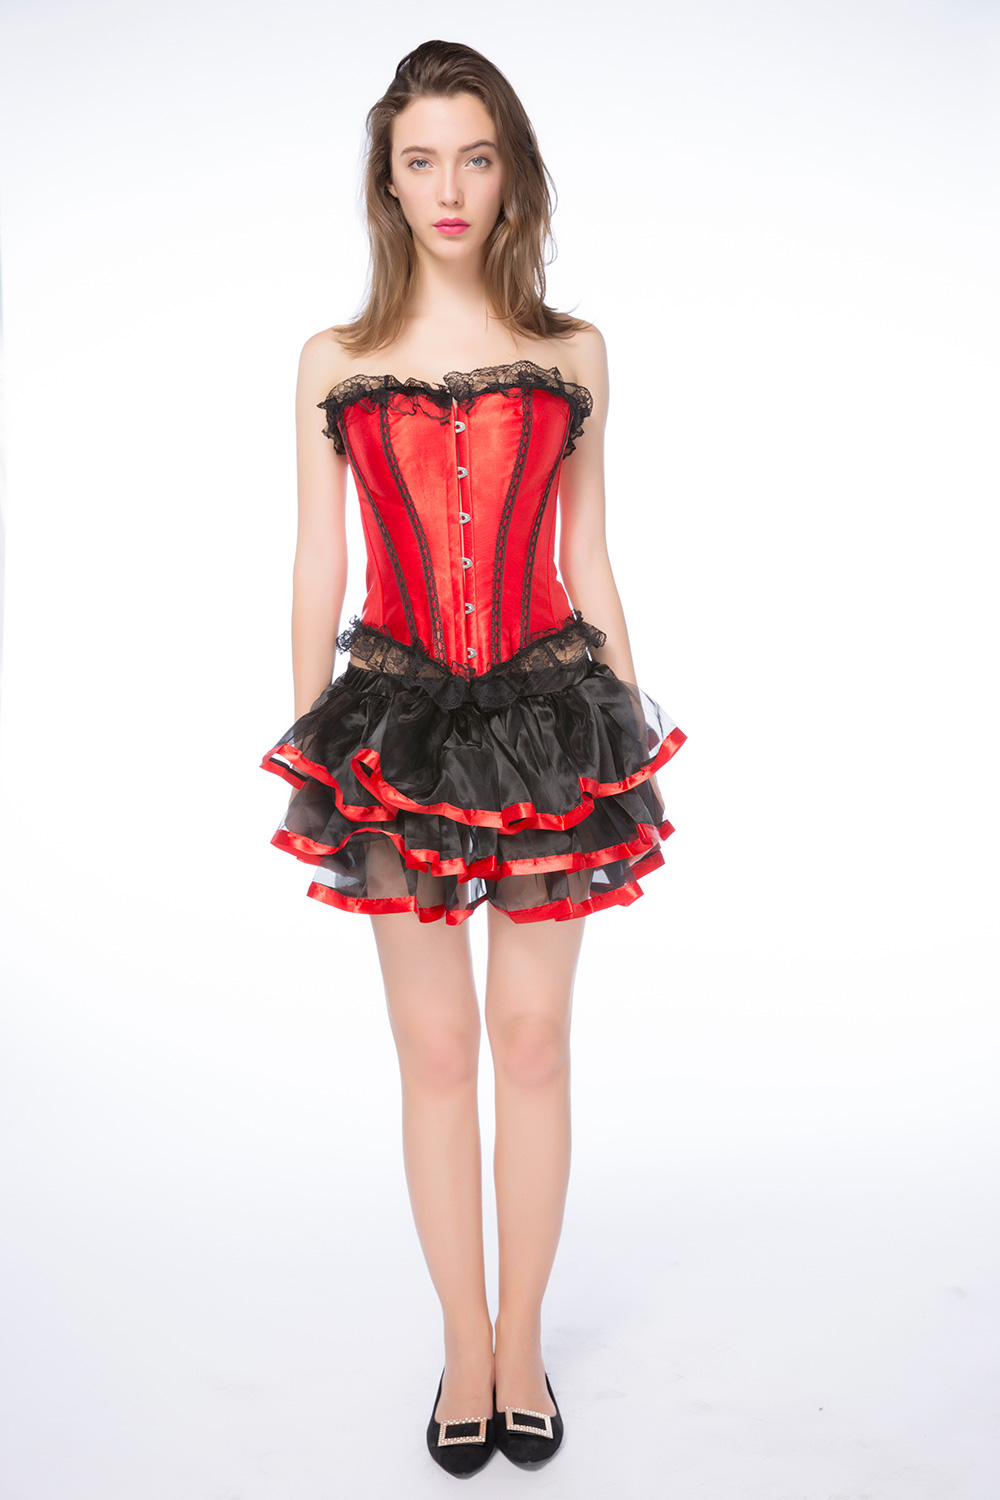 8eb78c60a9ace Women sexy Lingerie Bustiers Red steampunk corset Lace Up with Tutu Skirt  Lingerie set Burlesque Korset over size S 6XL-in Bustiers   Corsets from  Underwear ...